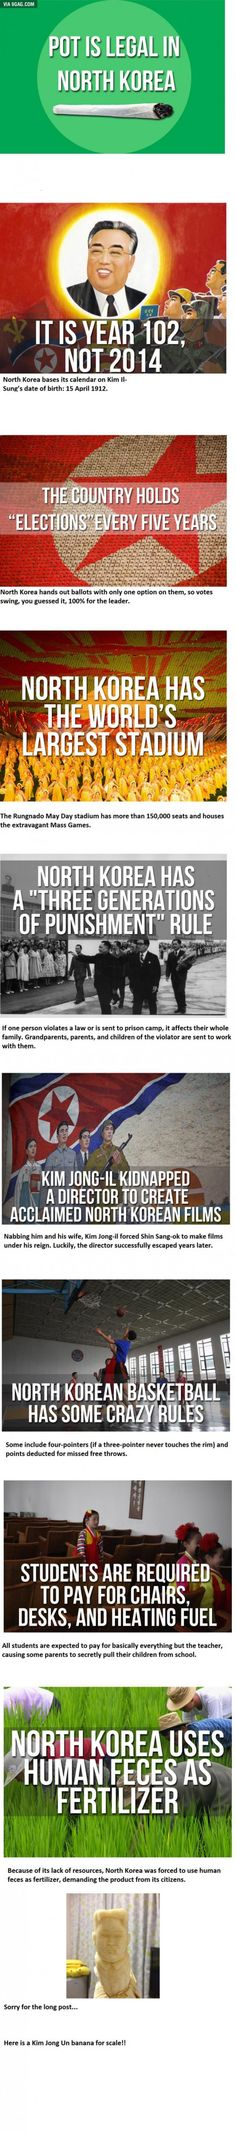 Some facts about North Korea!